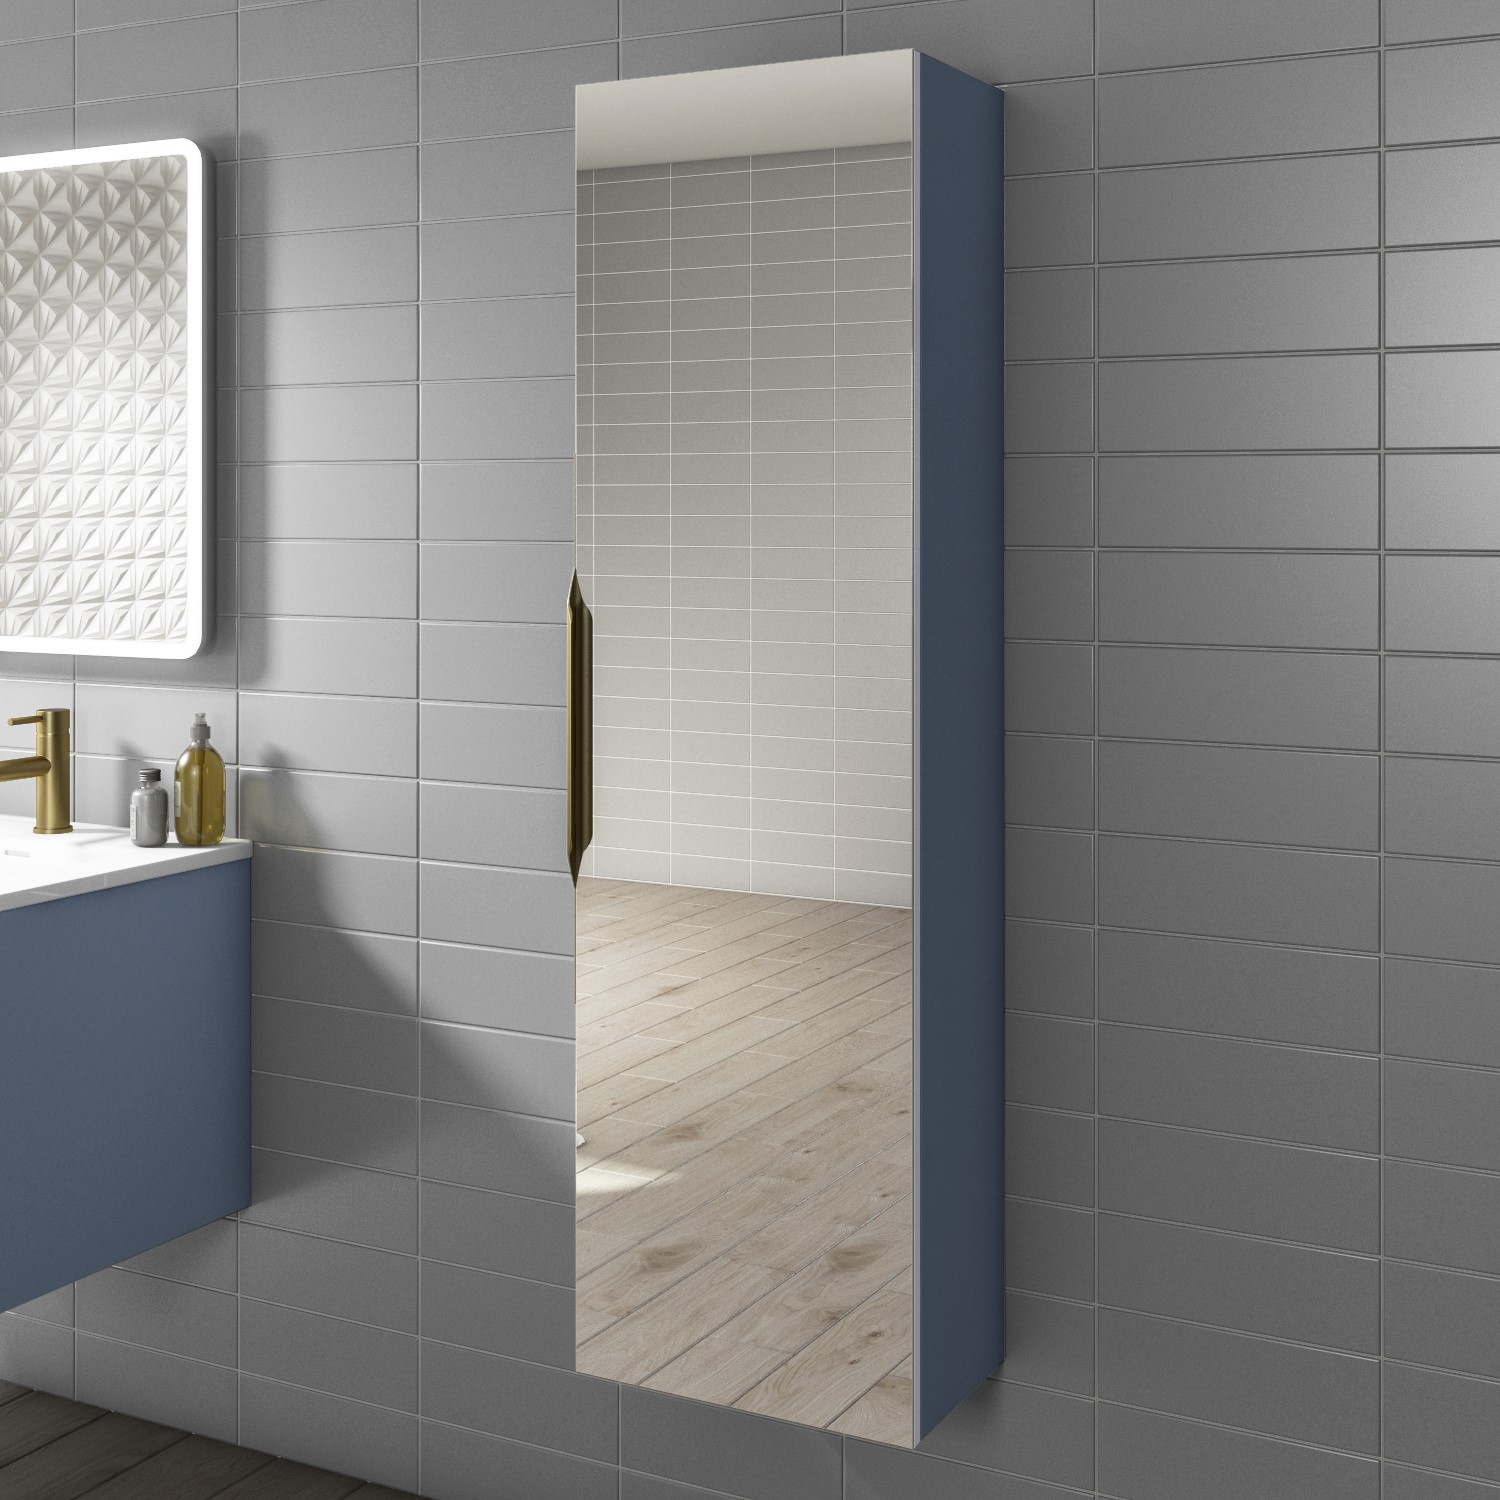 Blue Mirrored Wall Mounted Tallboy Bathroom Cabinet 1400 X 400 Mm Sion Better Bathrooms